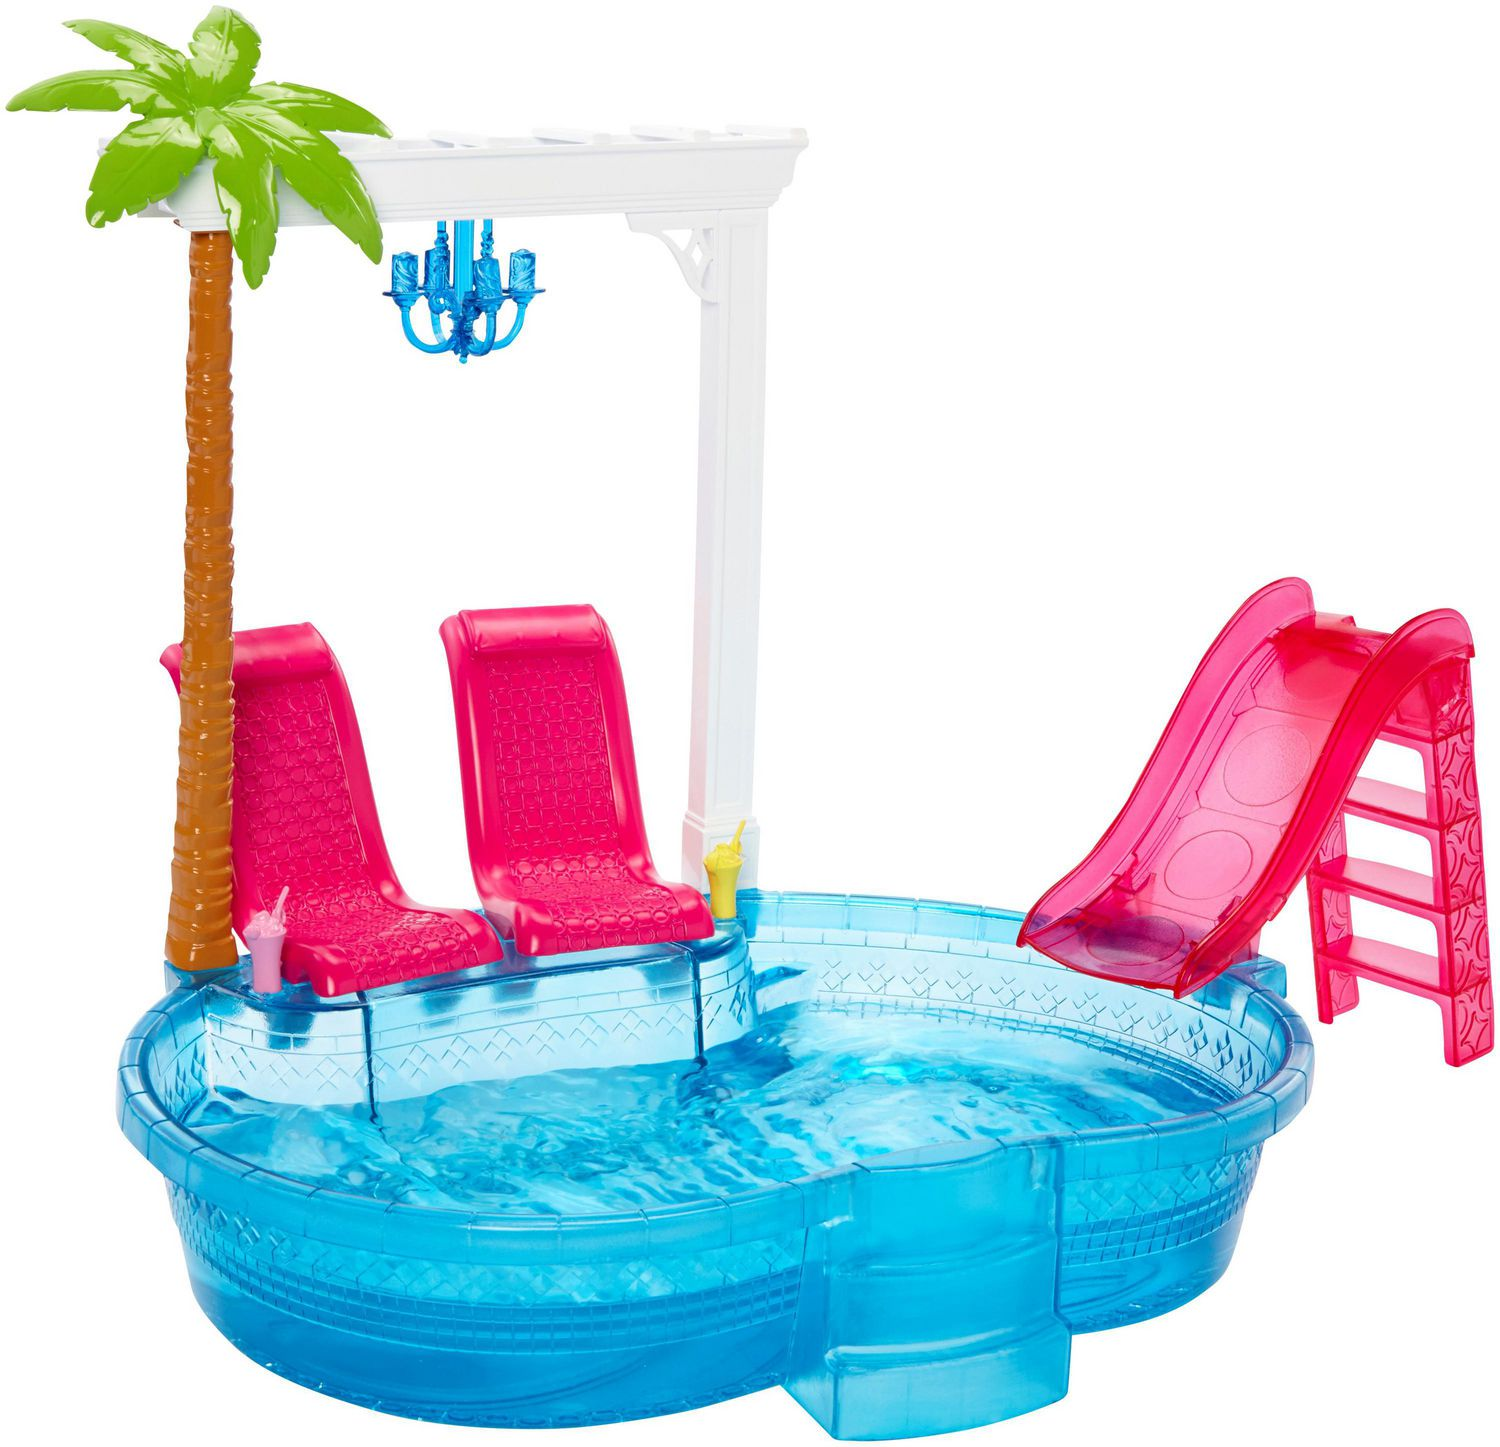 Pool Kaufen Real Barbie Glam Pool Playset